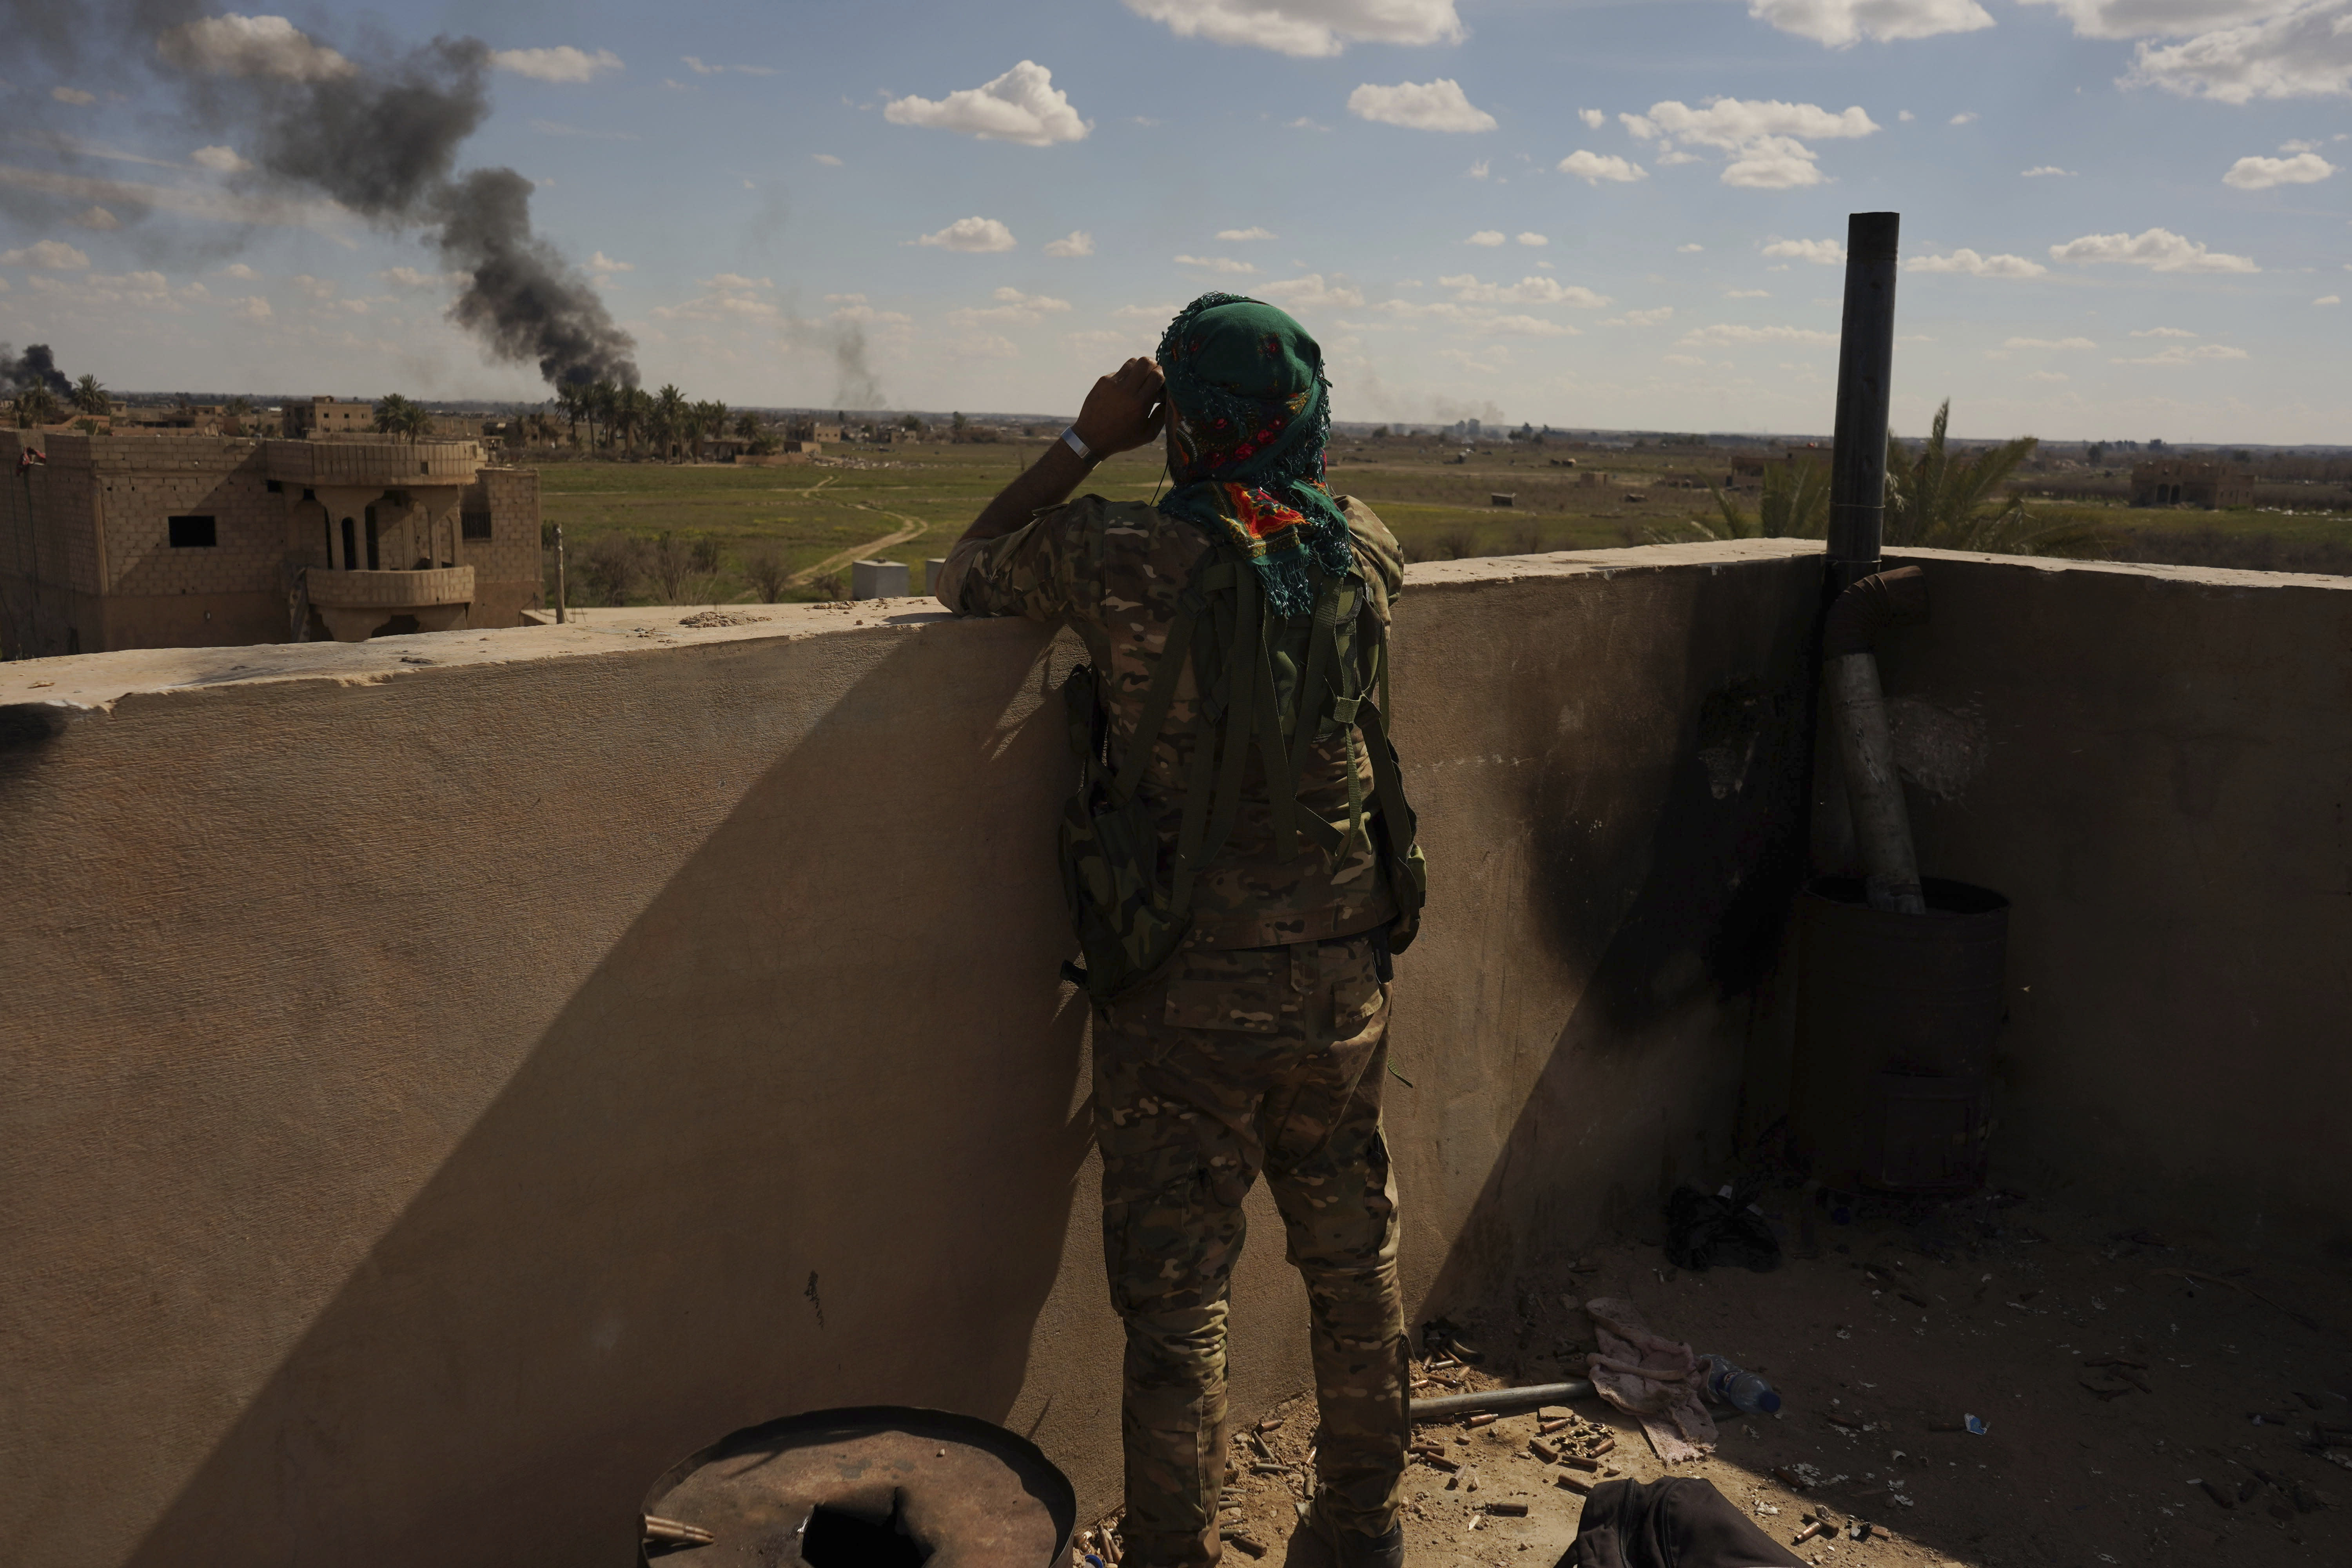 A U.S.-backed Syrian Democratic Forces (SDF) fighter watches black smoke billow from the last small piece of territory held by Islamic State militants as U.S. backed fighters pounded the area with artillery fire and occasional airstrikes in Baghouz, Syria, Sunday, March 3, 2019. (AP Photo/Andrea Rosa)